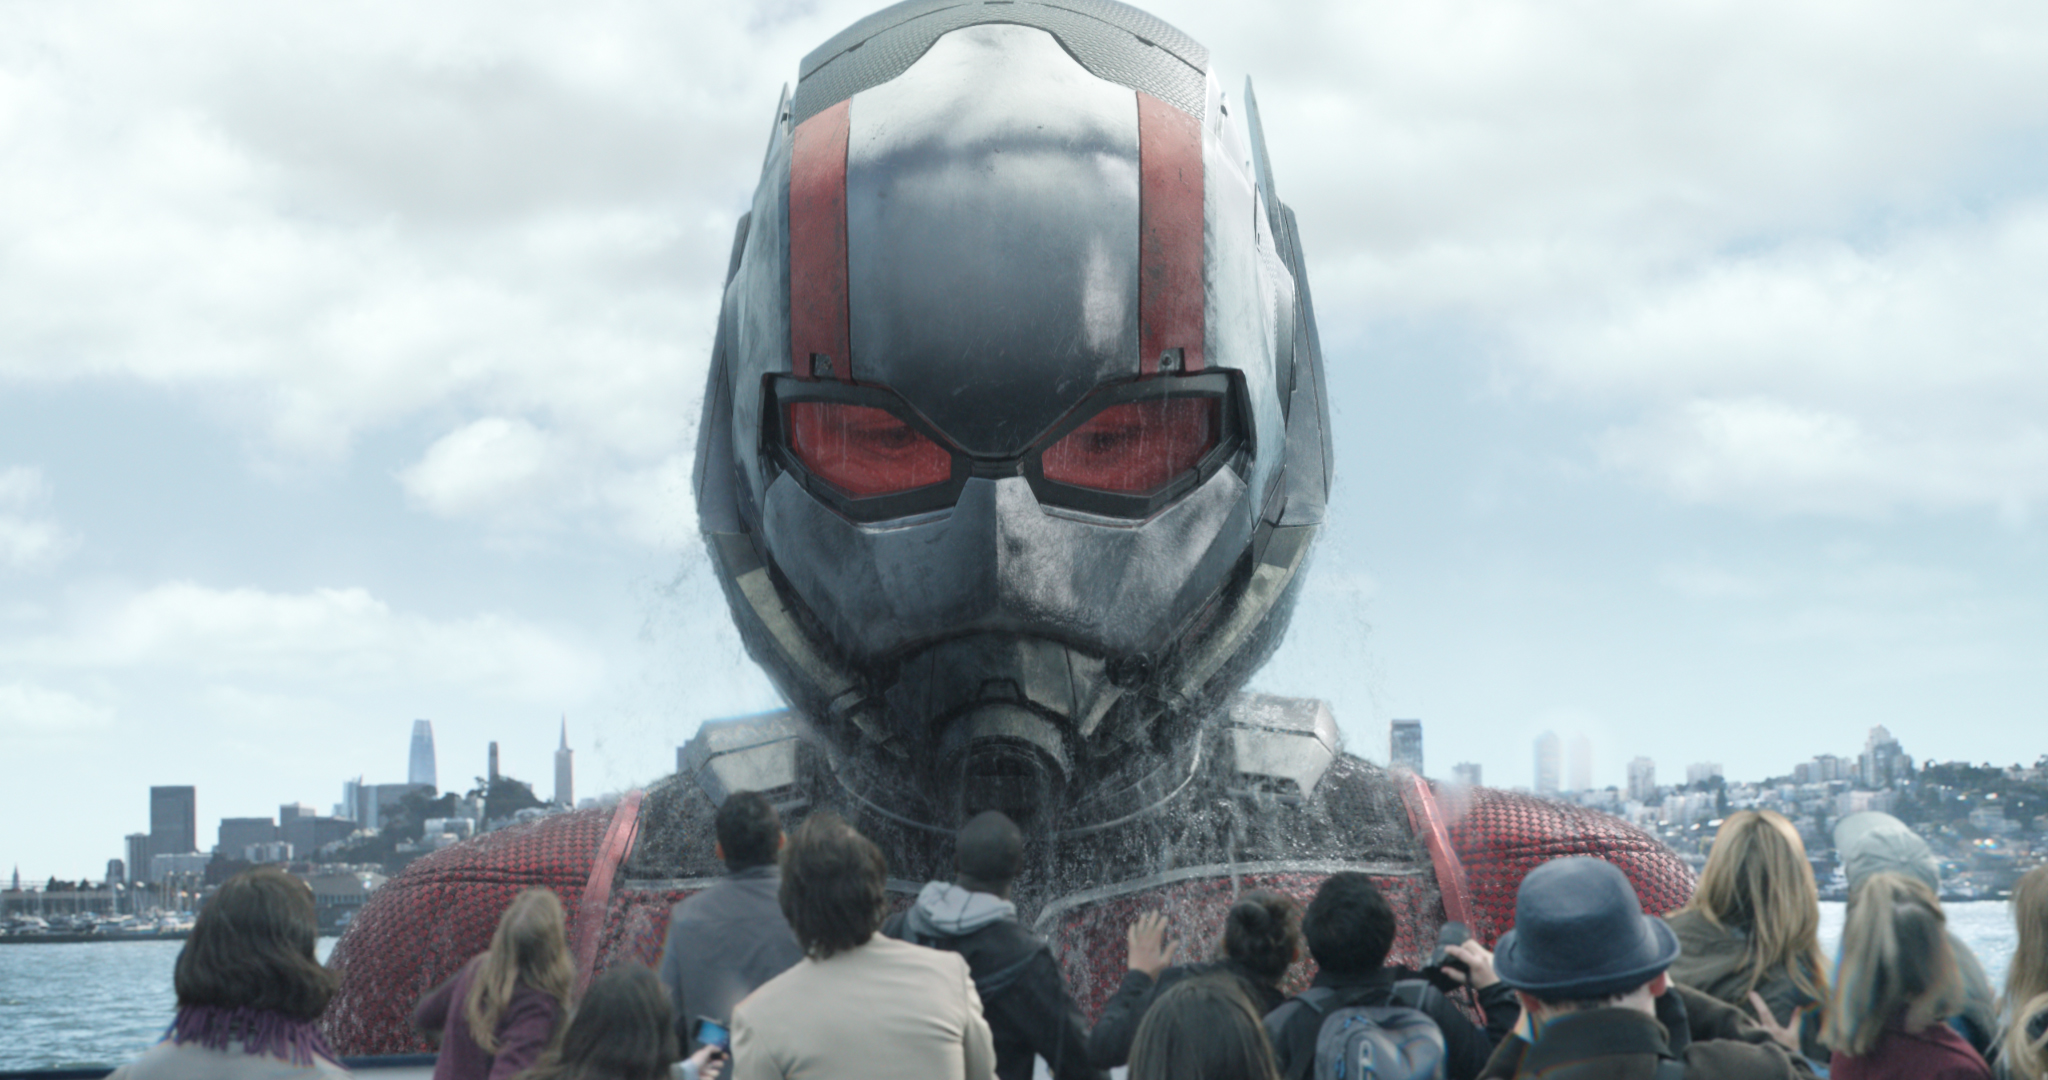 Ant-Man and the Wasp – New Trailer and Poster